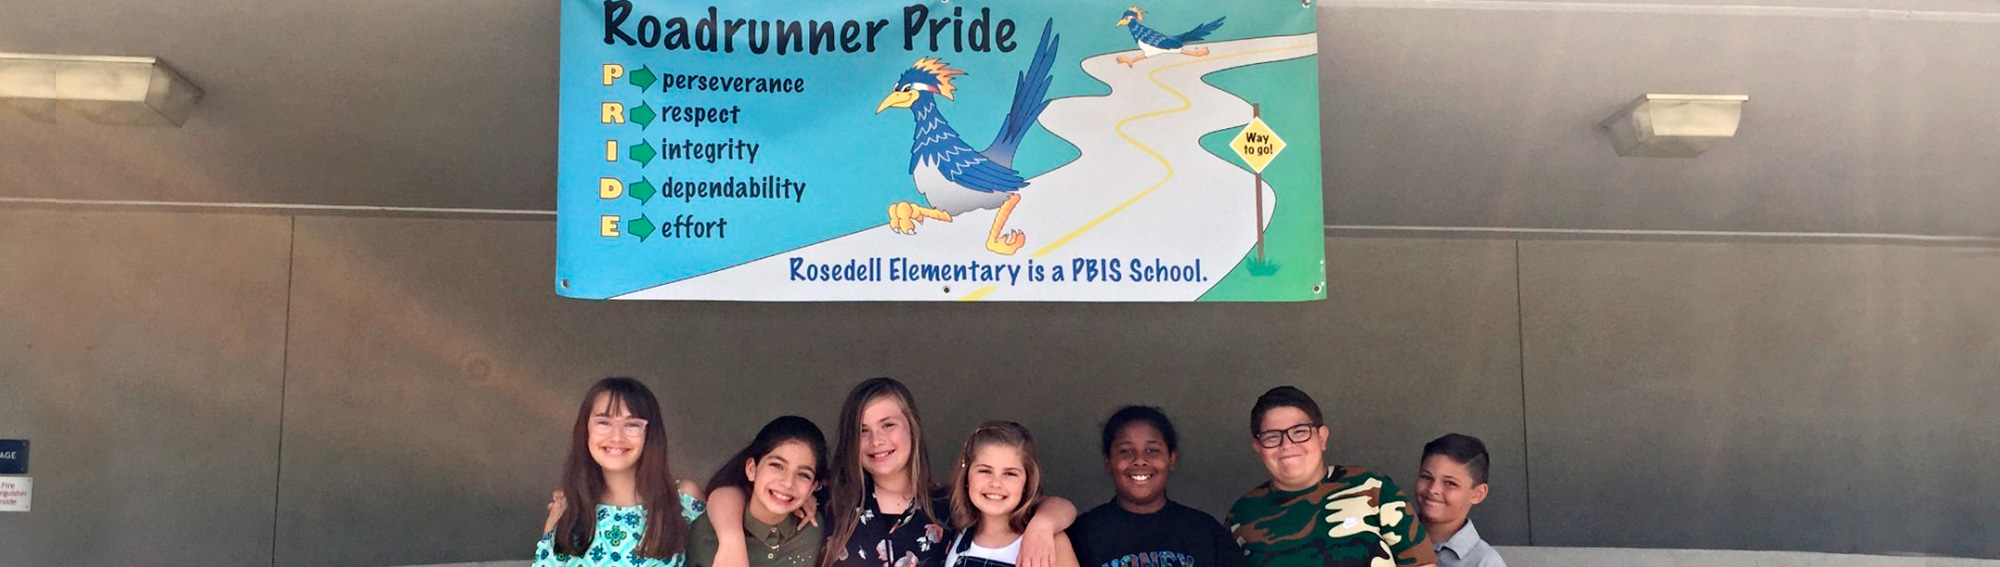 smiling students with a banner that says Roadrunner Pride. Perseverance, Respect, Integrity, Dependability, Effort. Rosedell Elementary is a PBIS School